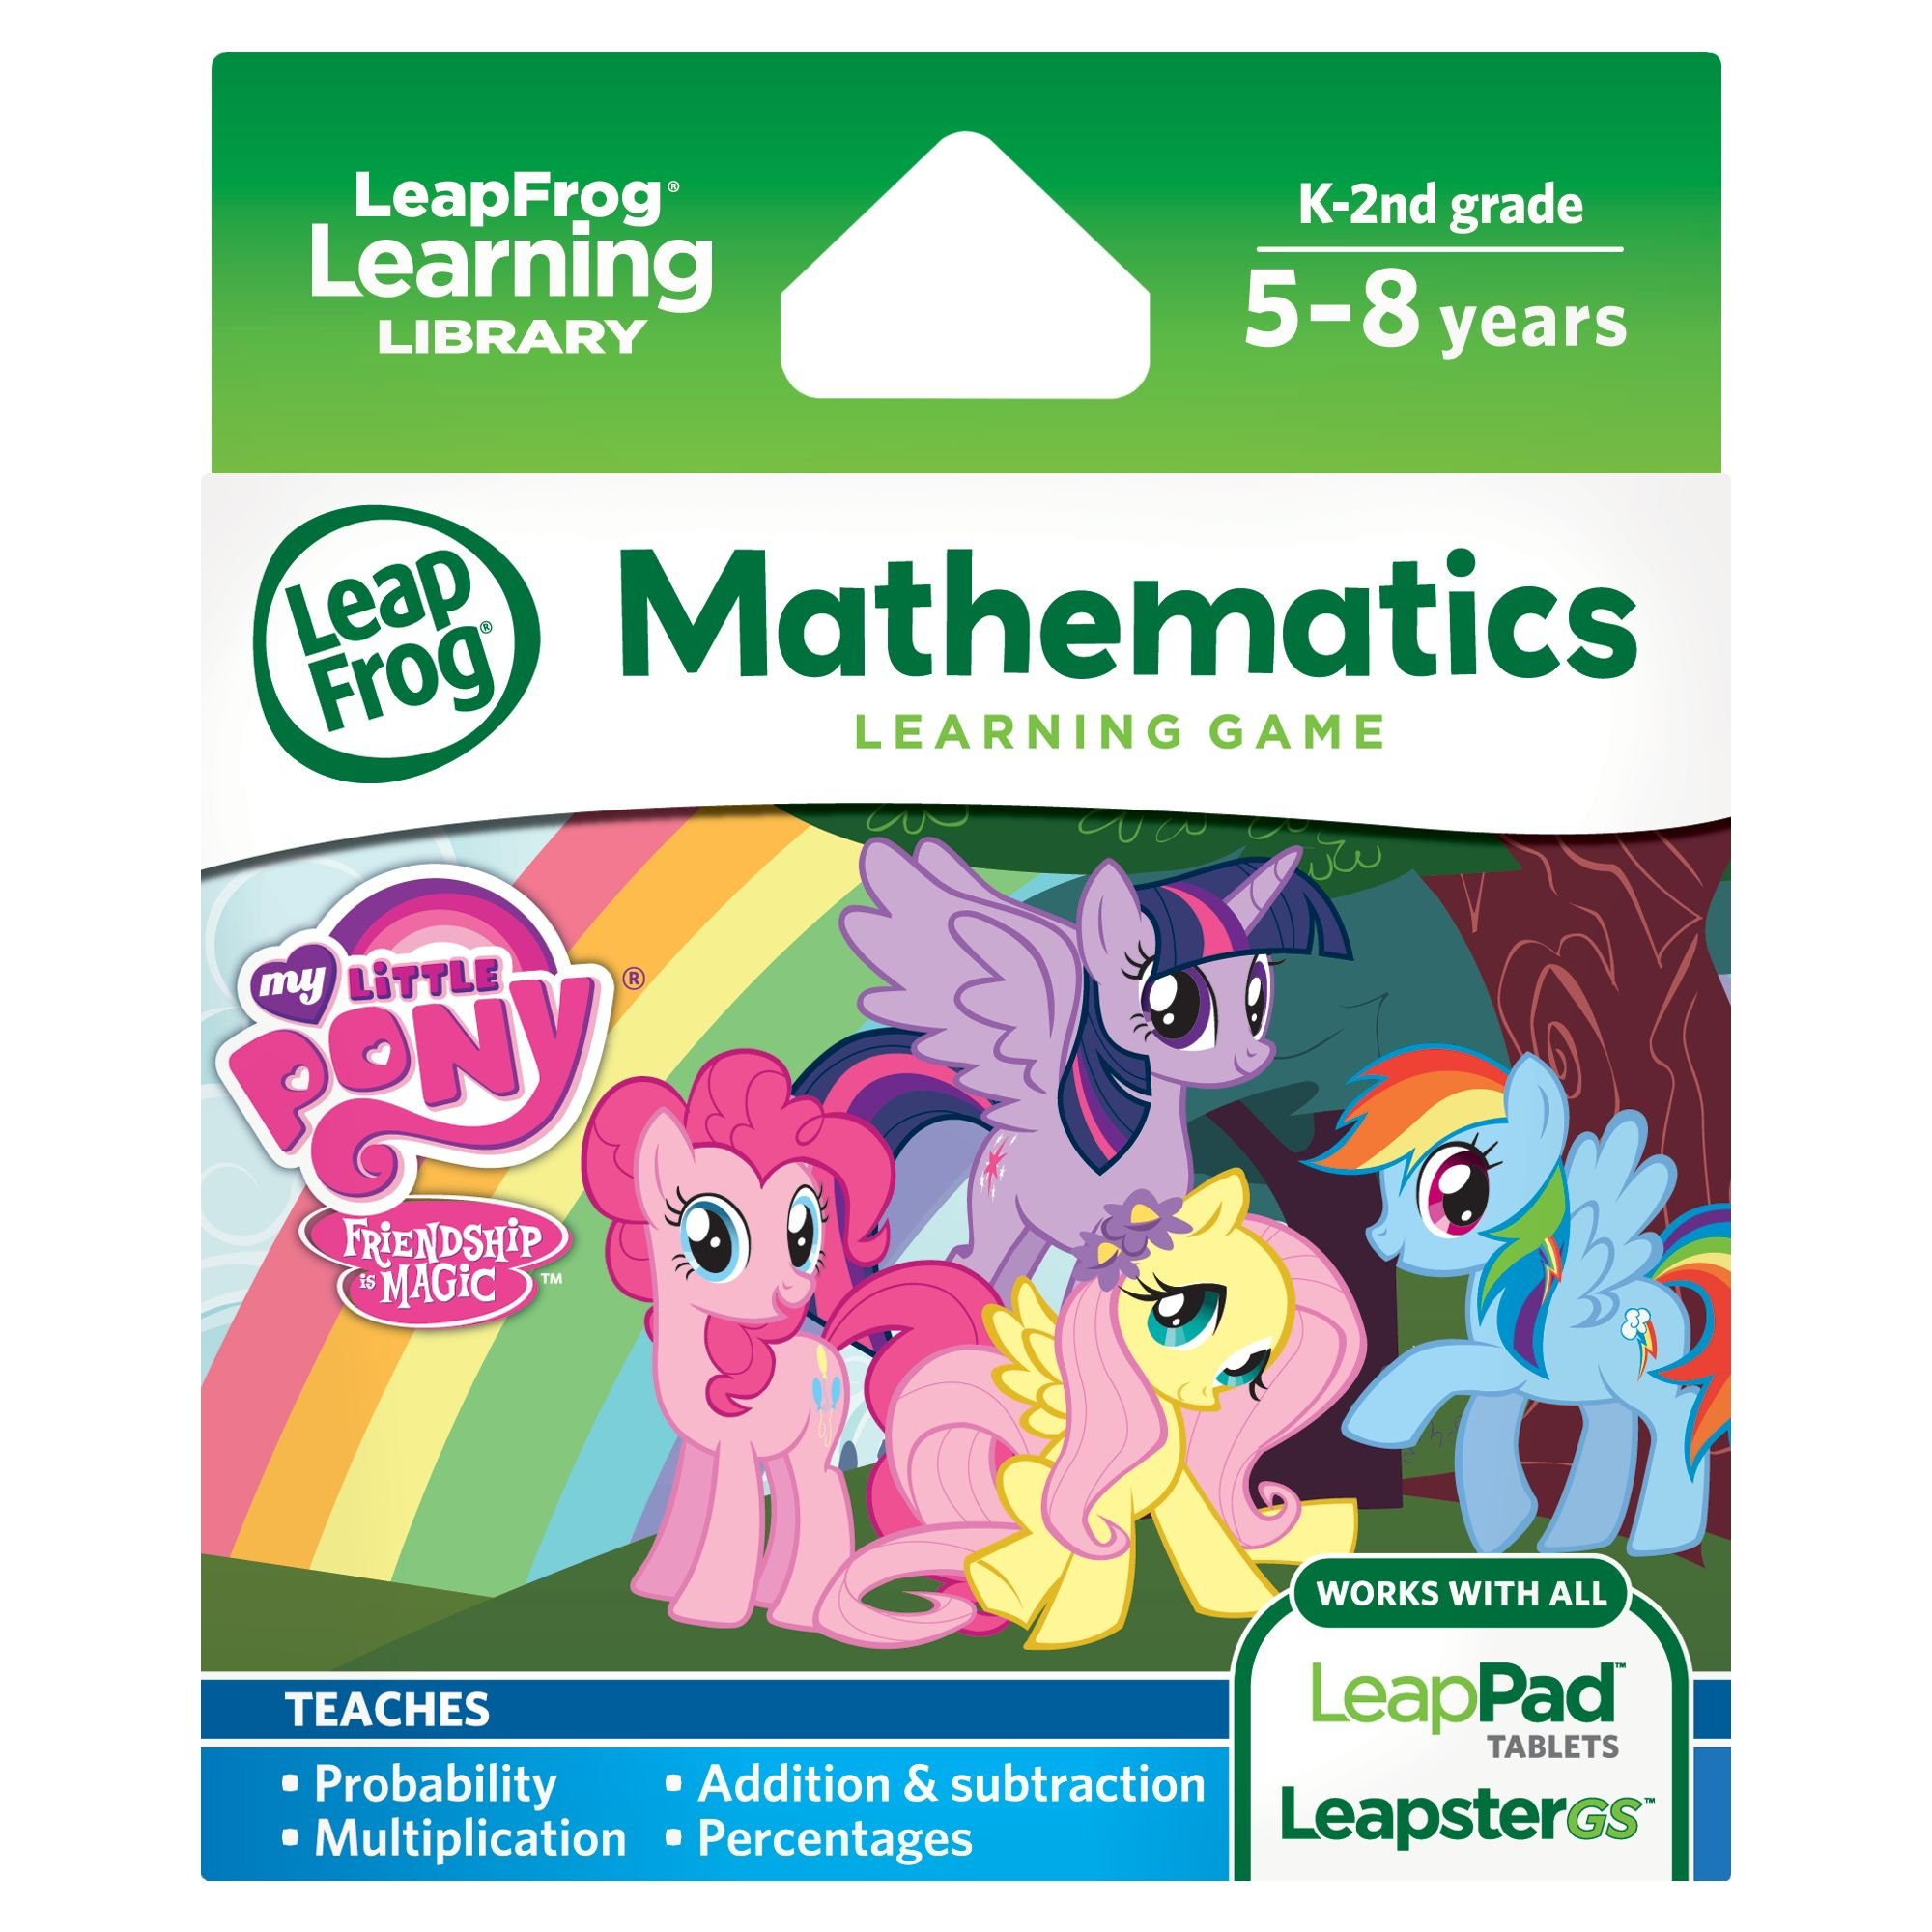 LeapFrog Learning Game: My Little Pony Friendship is Magic(for LeapPad Tablets and LeapsterGS) by LeapFrog